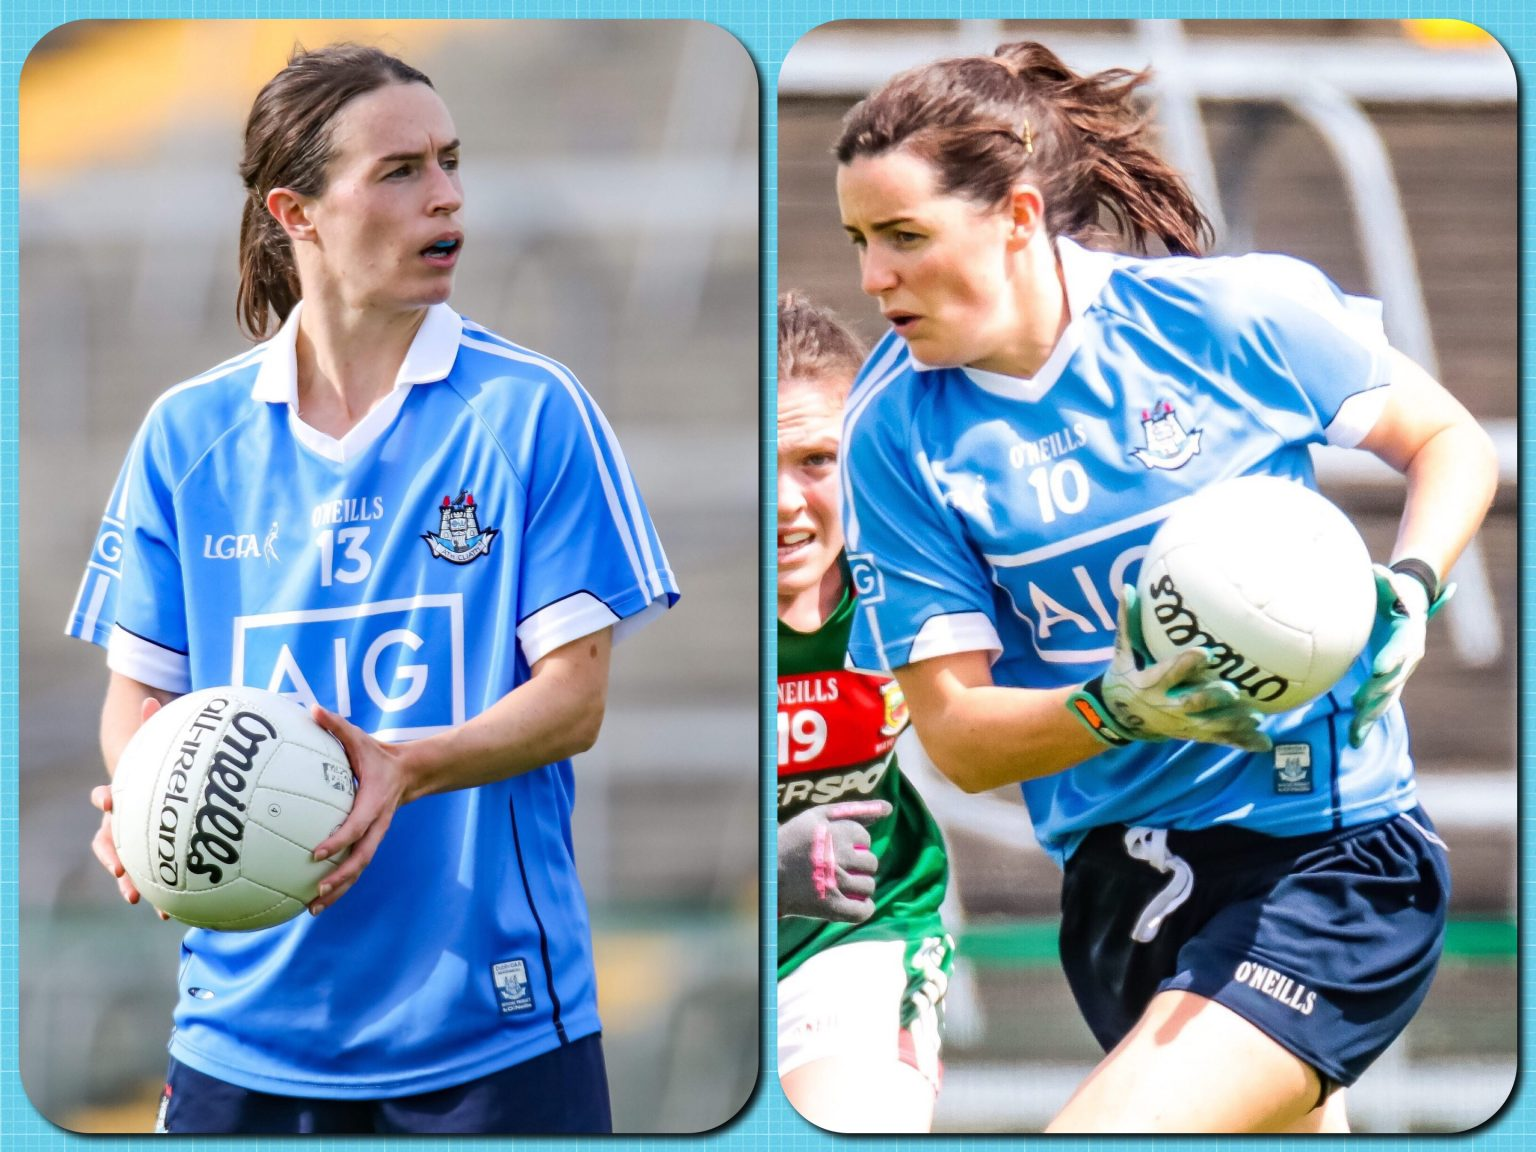 Action shots of Dublin ladies footballers Sinead Aherne and Lyndsey Davey in sky blue jerseys both players have been nominated for the Players Player Of The Year Award